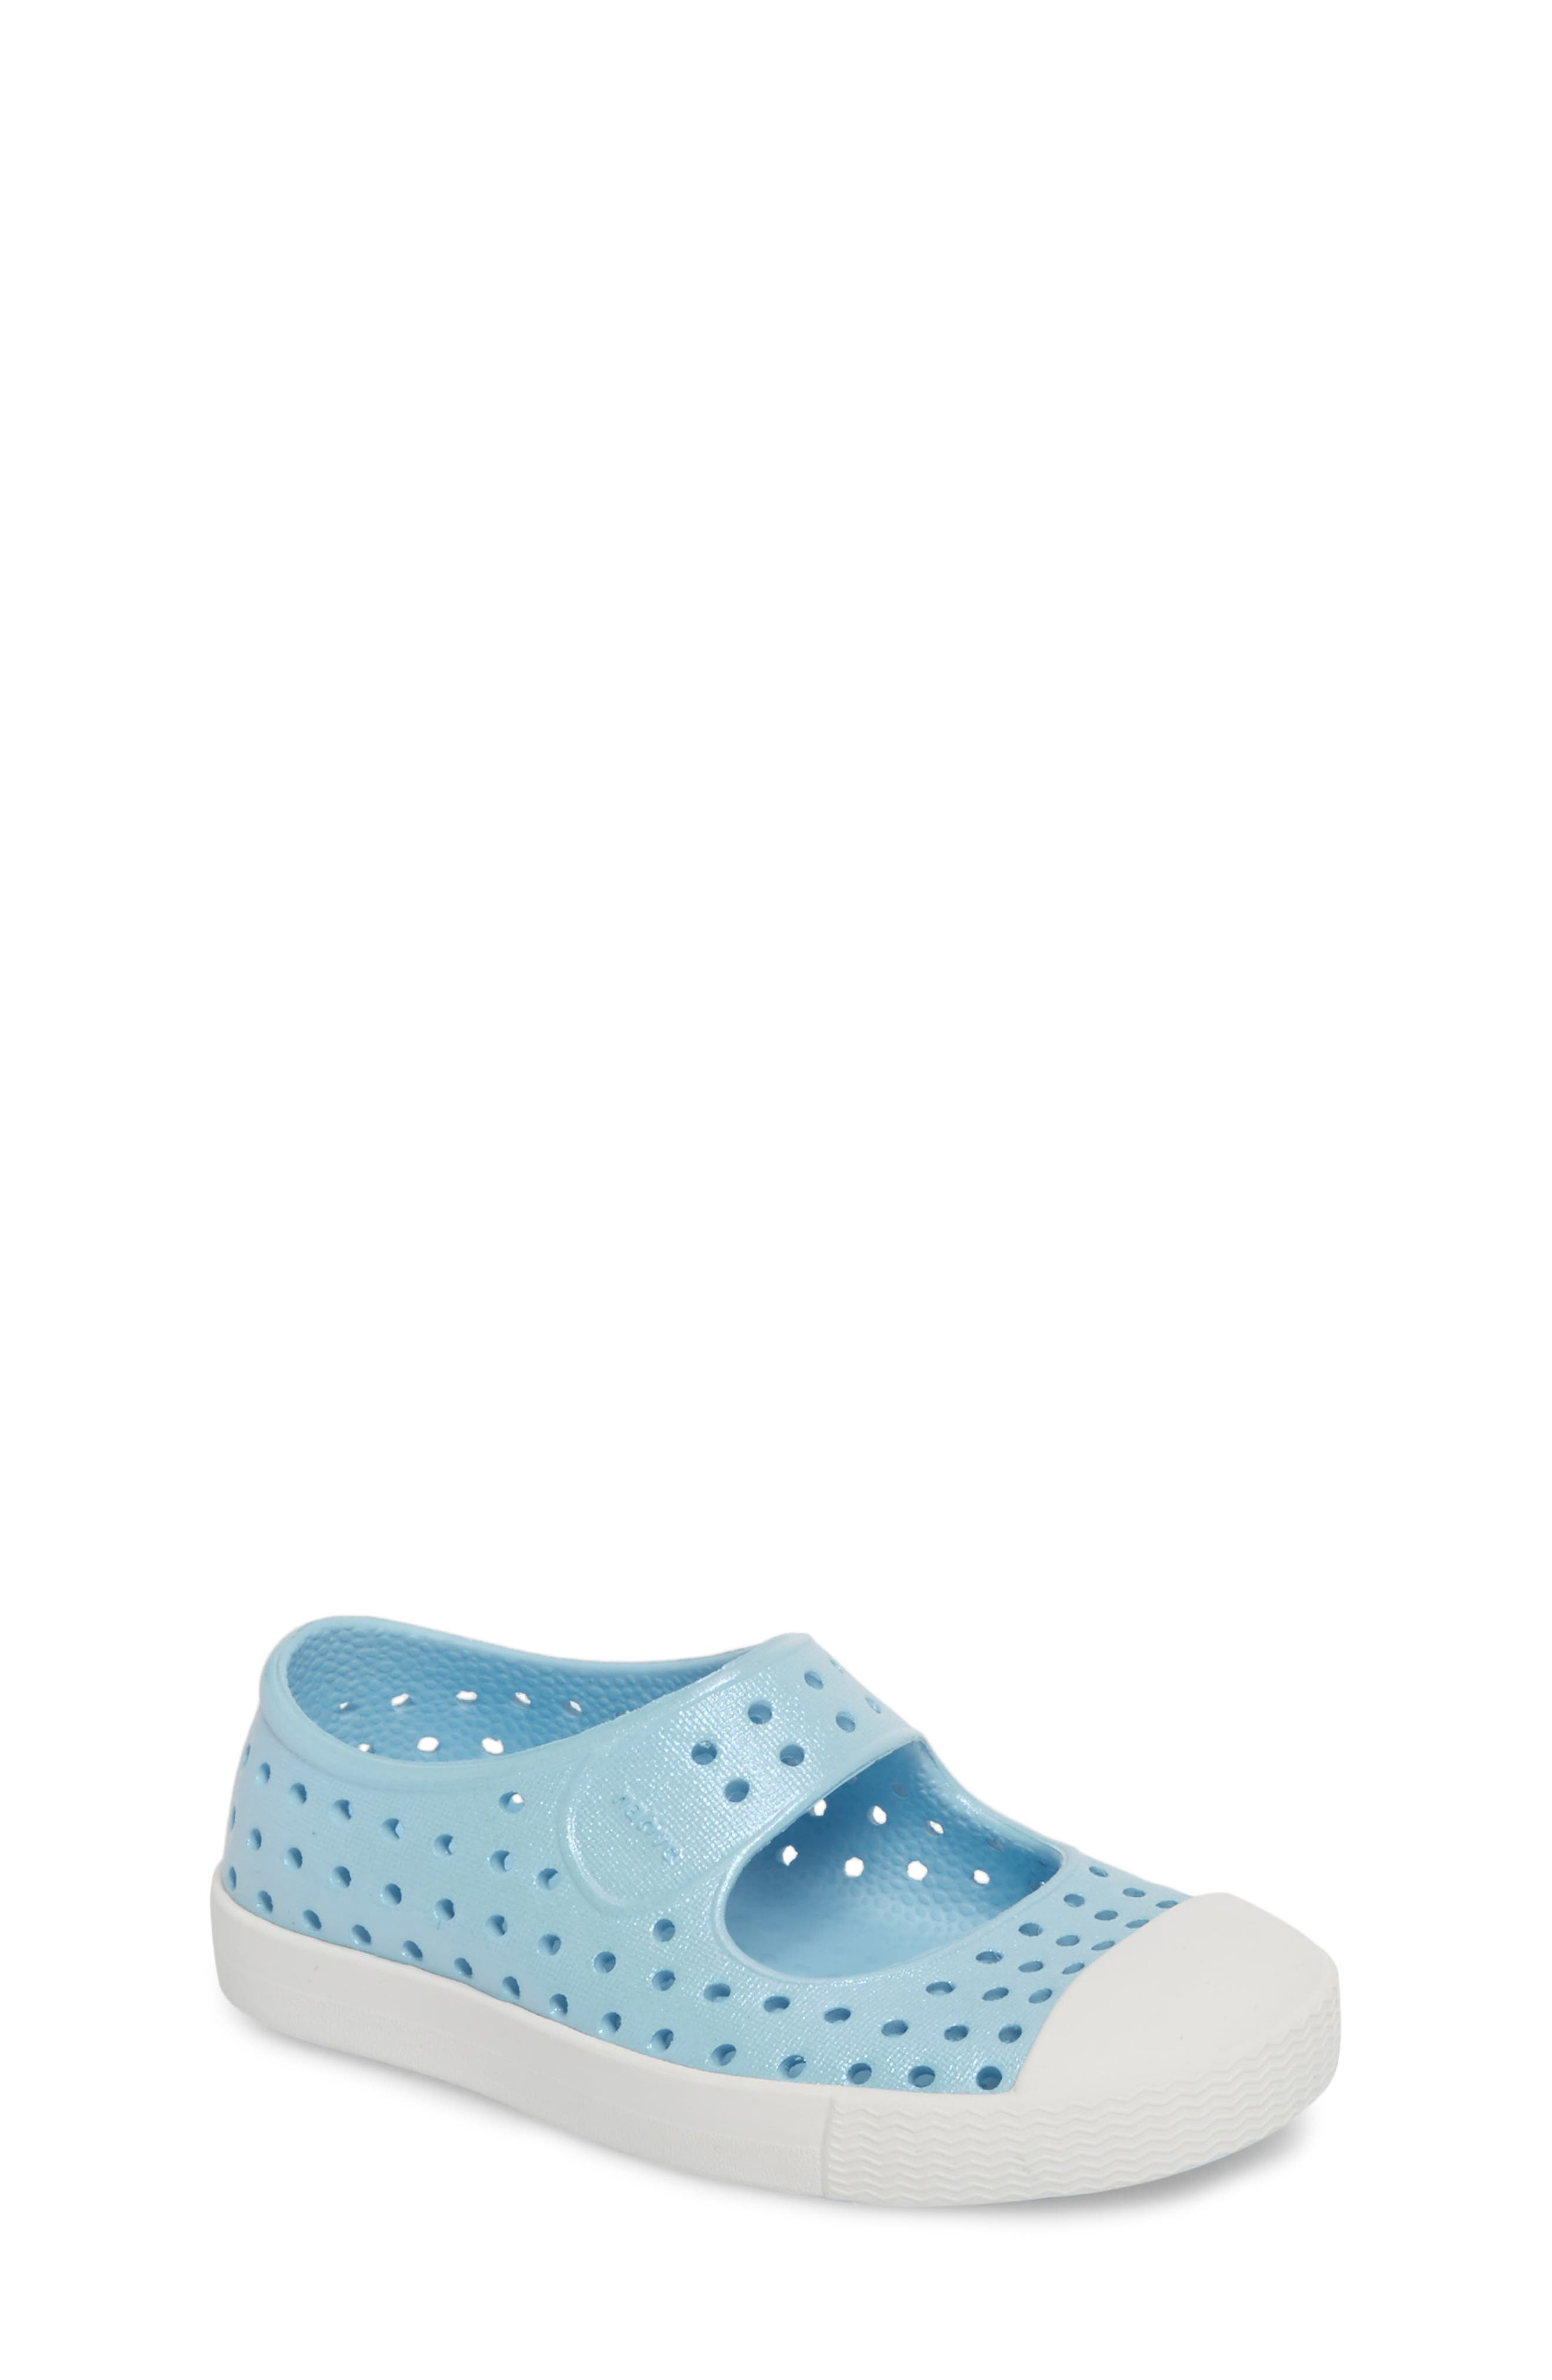 Juniper Perforated Mary Jane,                             Main thumbnail 1, color,                             Sky Blue/ White/ Galaxy